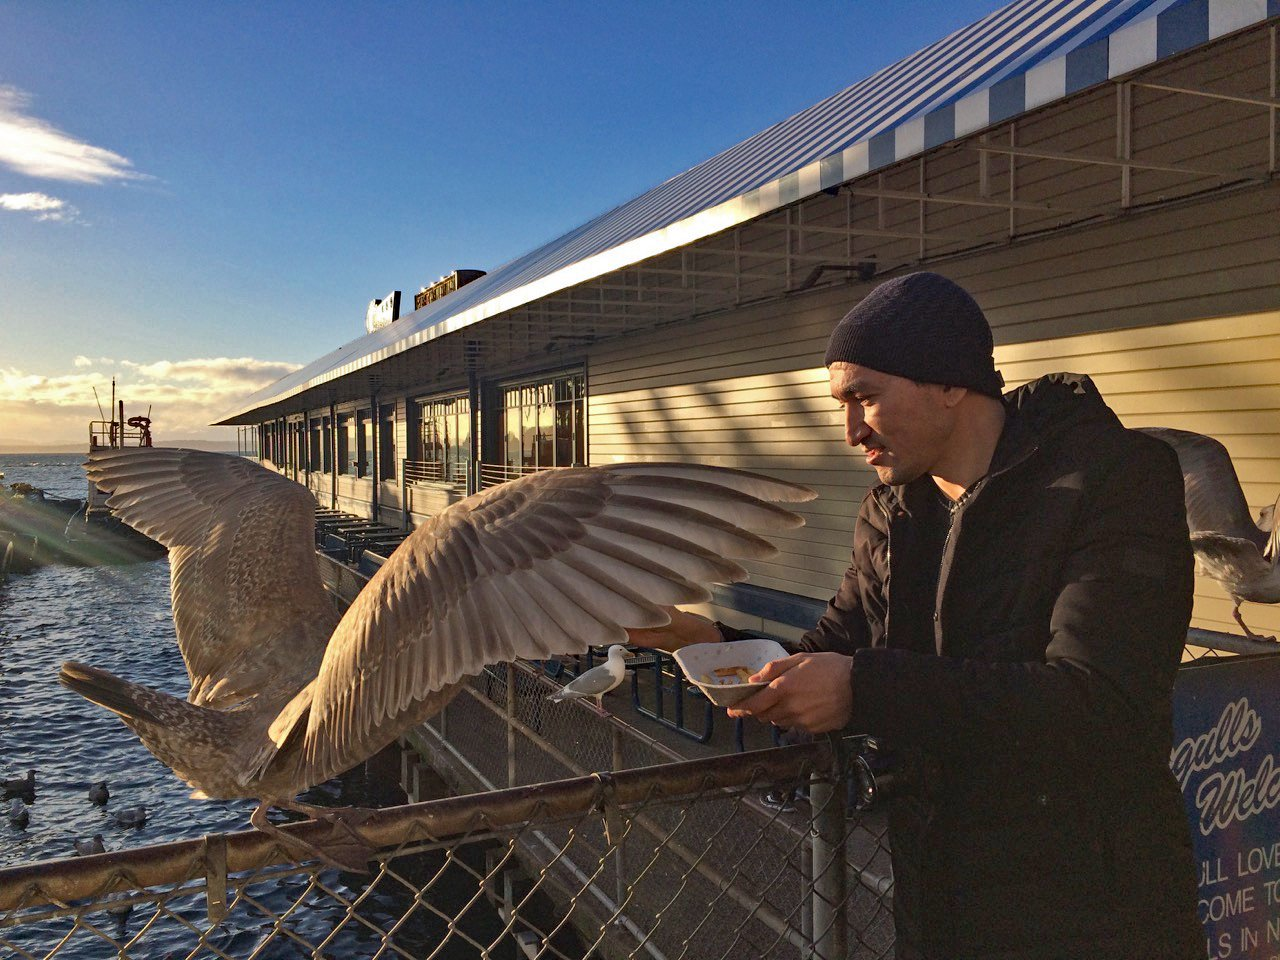 At Ivar's Fish Bar, you ARE allowed to feed the bird, so Sanjar Said does! Seattle, February 17, 2018